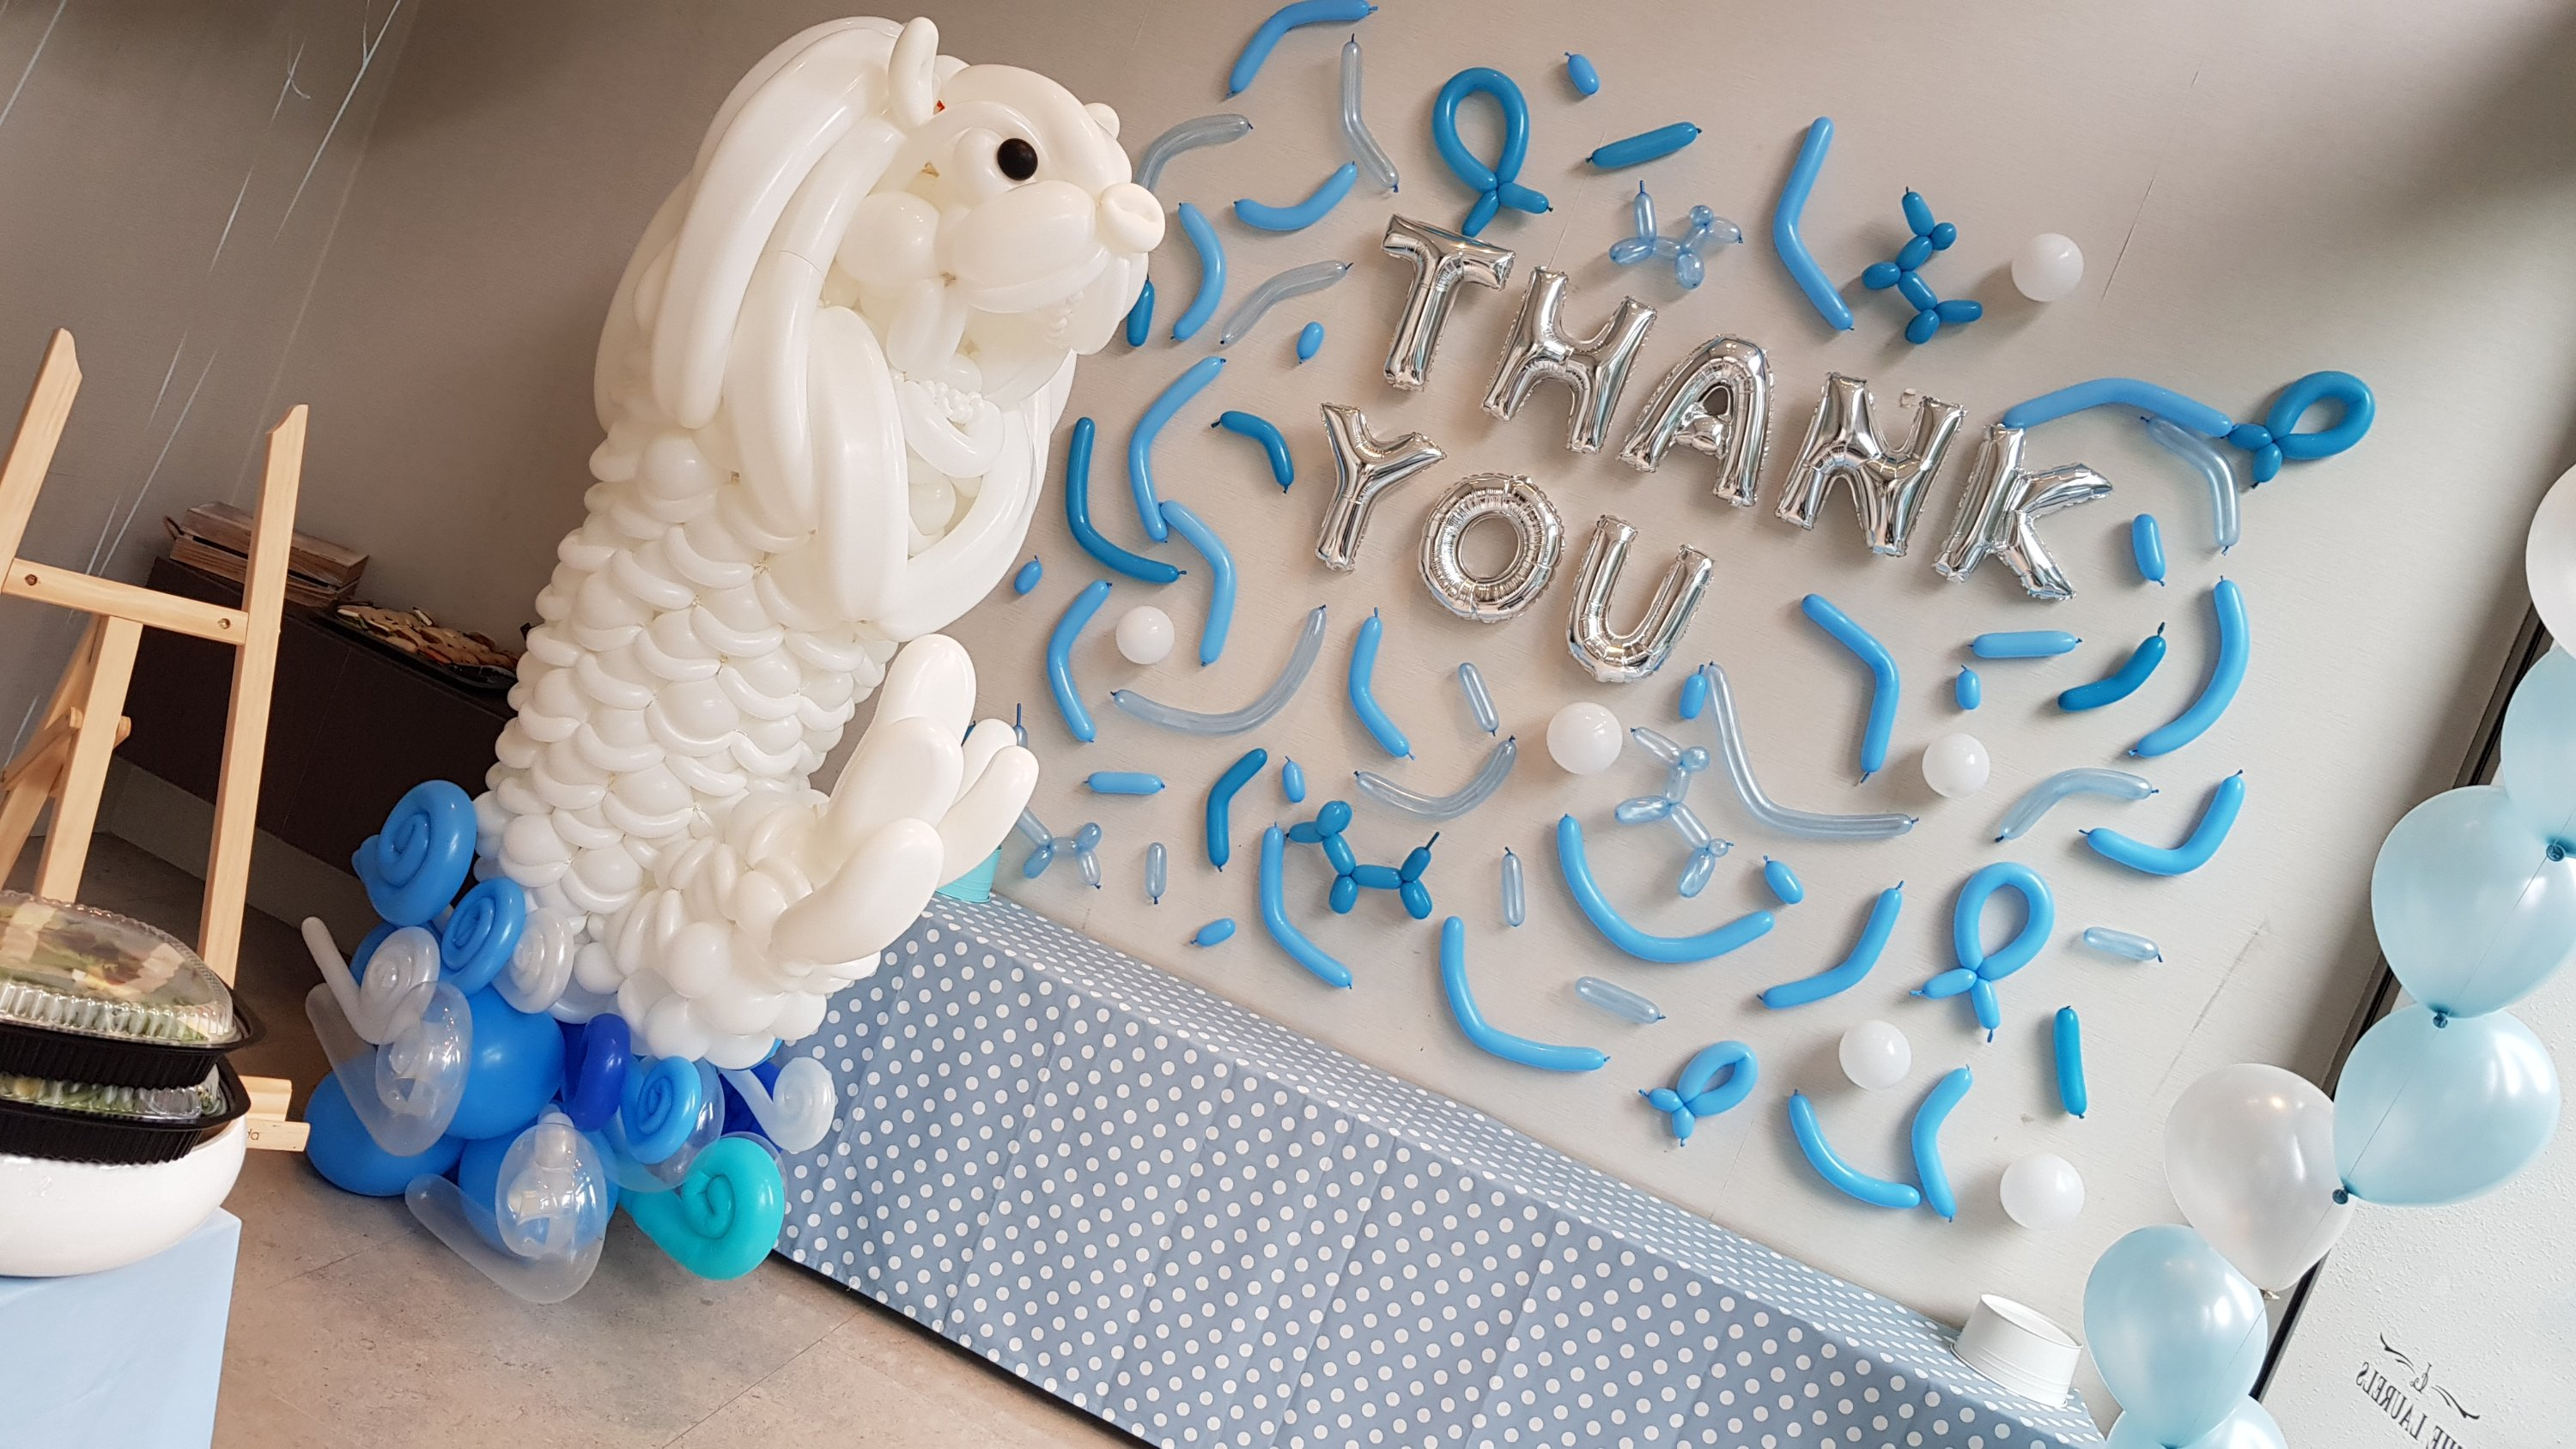 , Merlion balloon sculpture for farewell party!, Singapore Balloon Decoration Services - Balloon Workshop and Balloon Sculpting